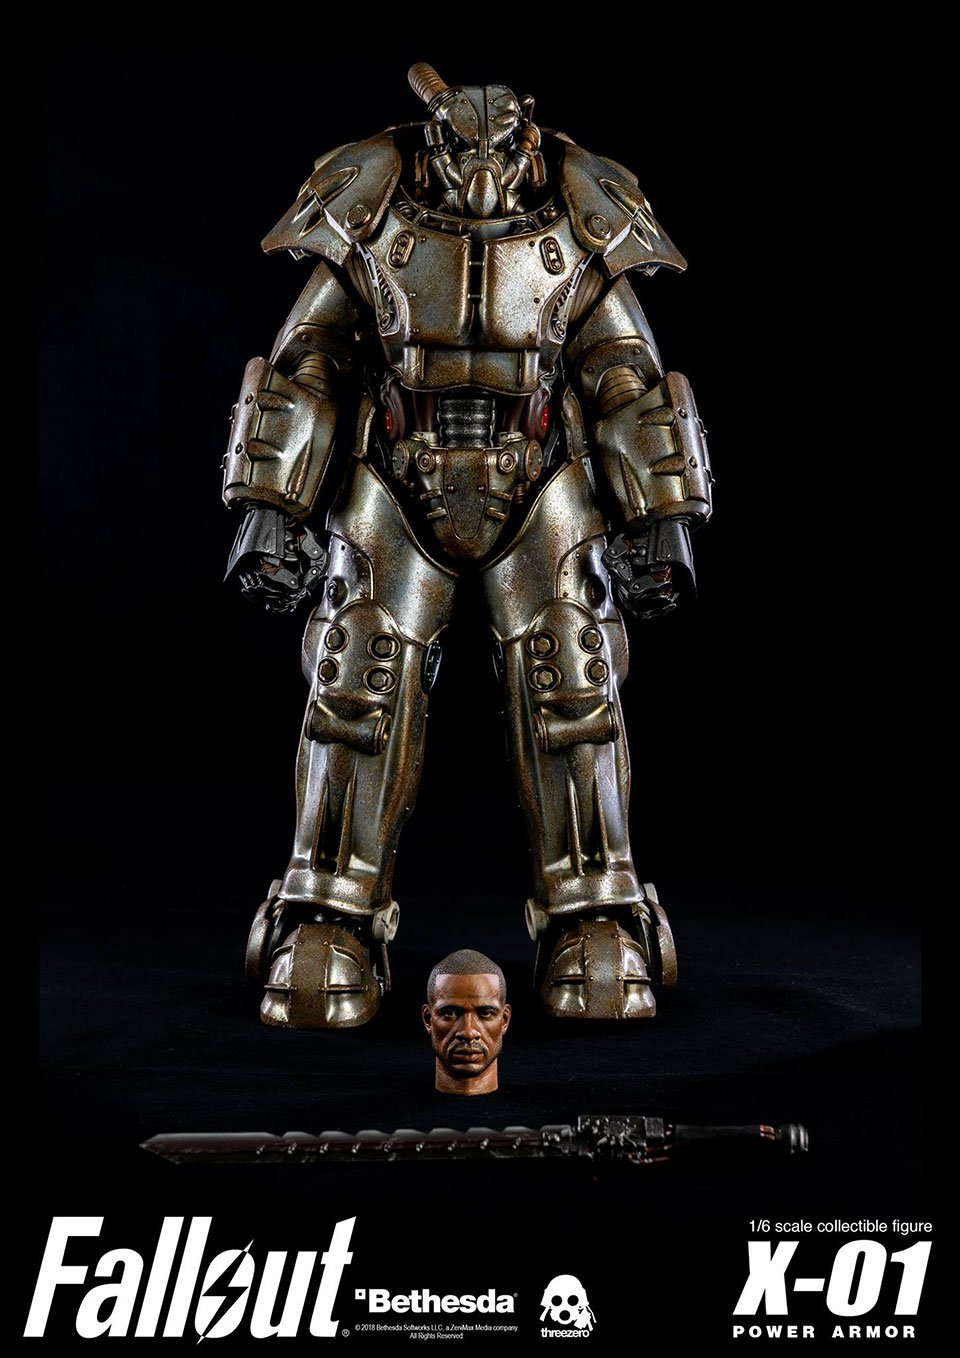 Fallout 4's X-01 Power Armor Gets a Highly Detailed Action Figure